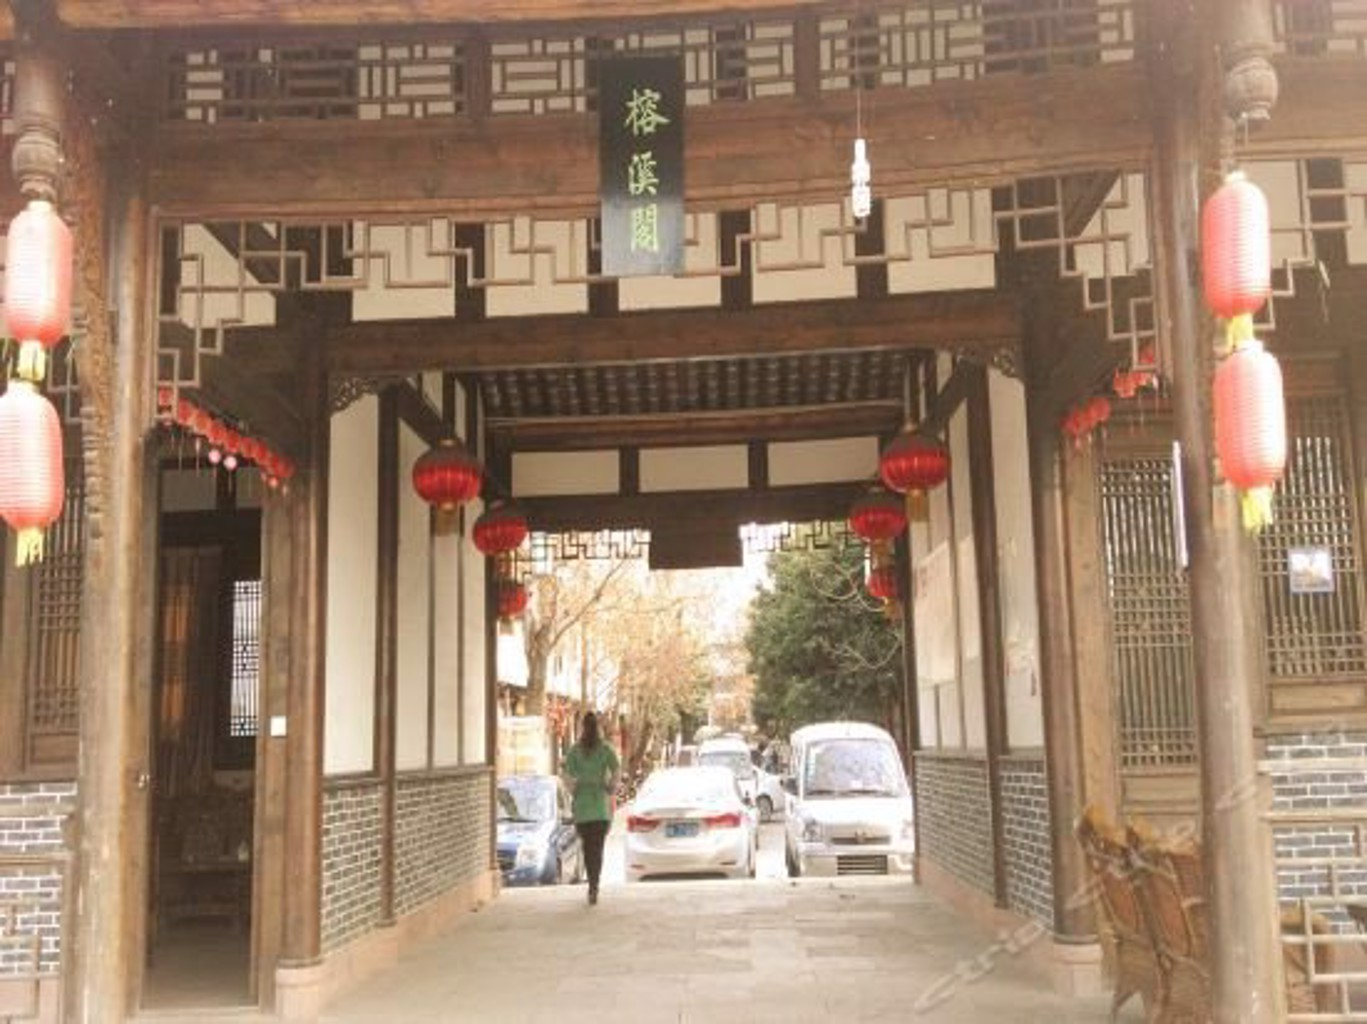 Gallery image of Wenfeng Inn